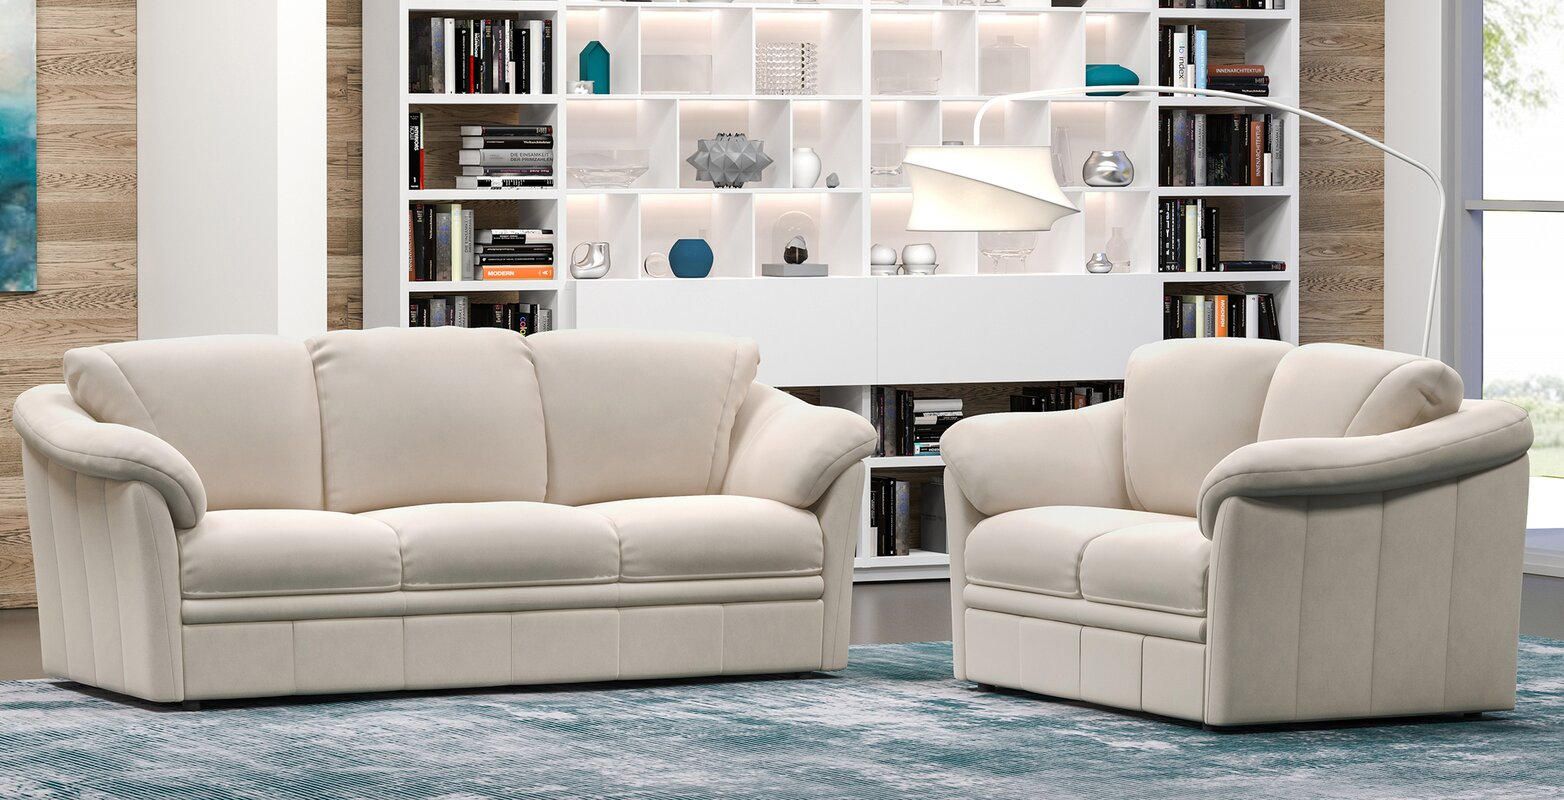 Westland and Birch Lyons 2 Piece Leather Living Room Set